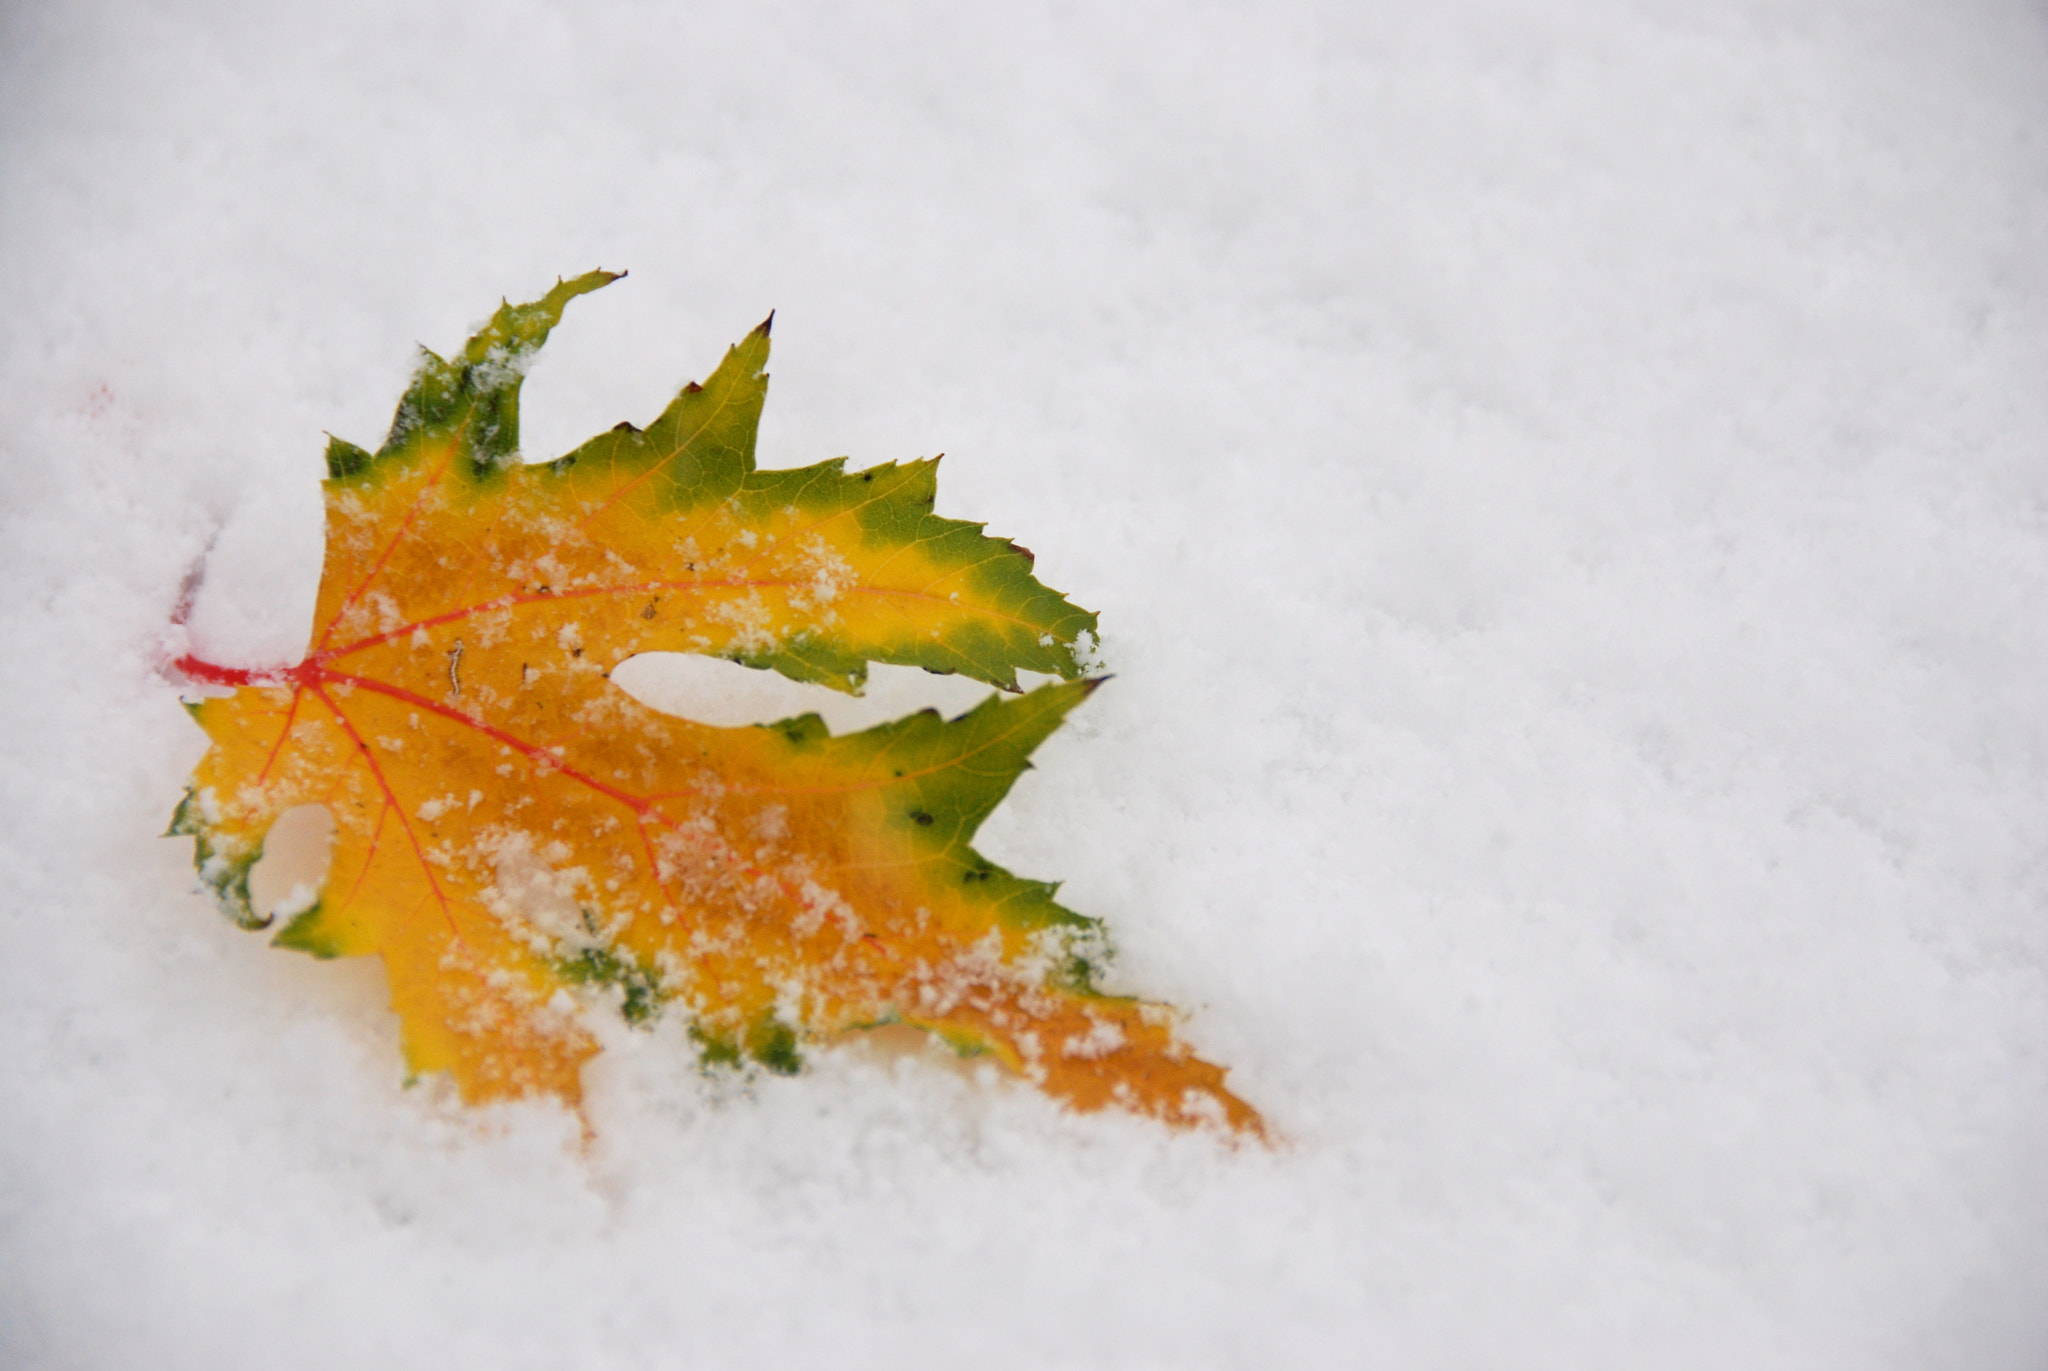 Photograph Cold leaf by Charlotte Frey on 500px